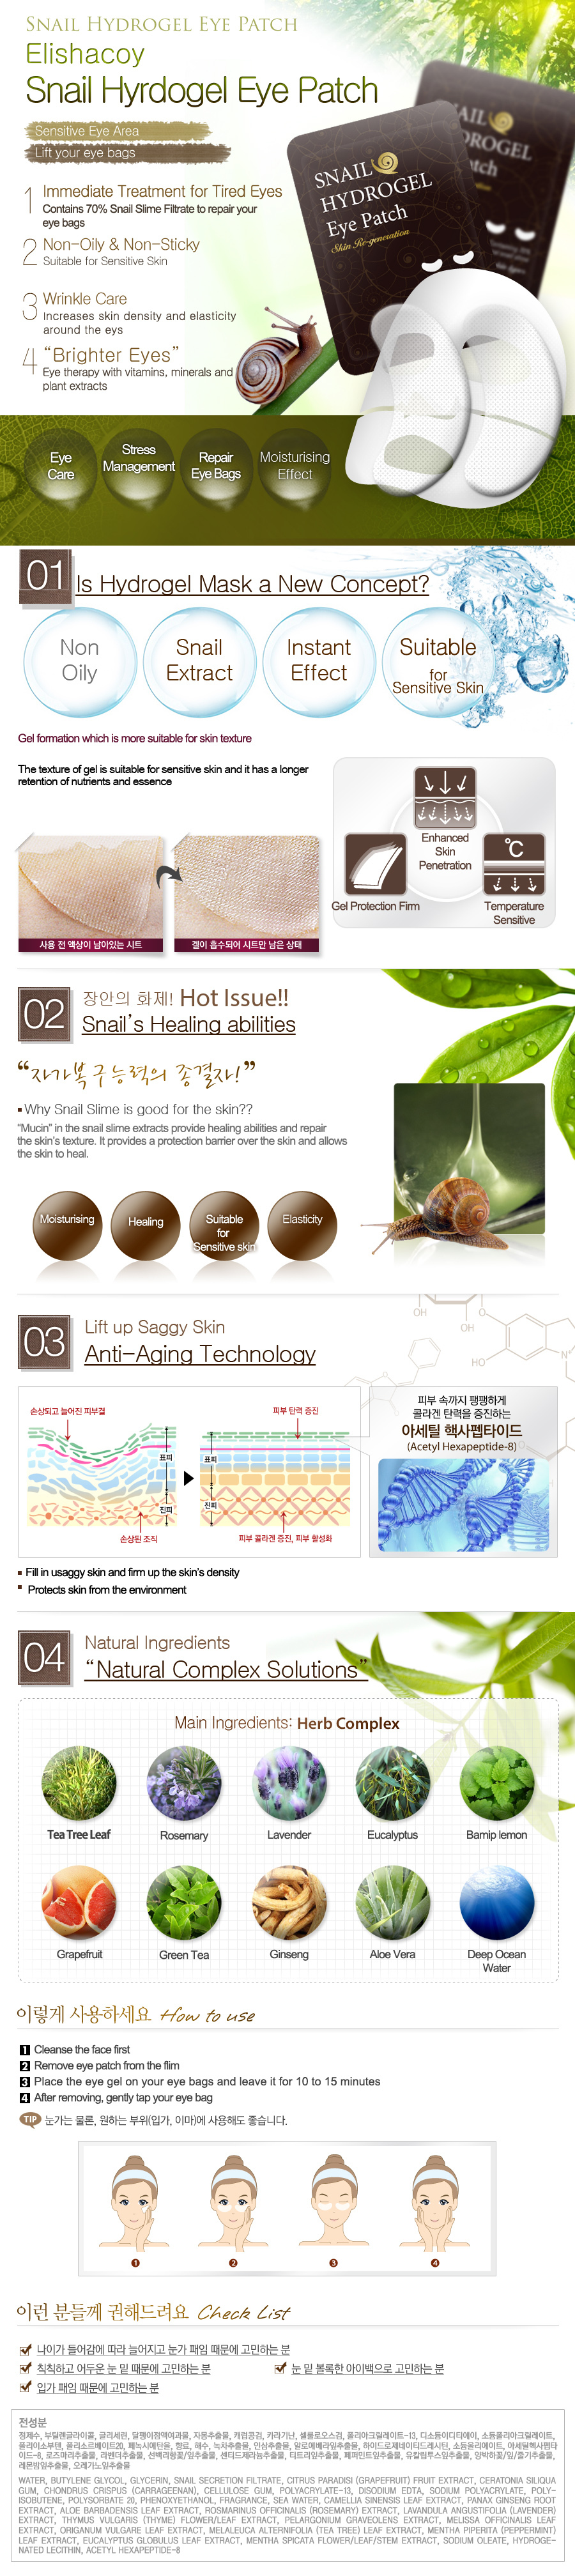 Snail Hydrogel Eye Patch